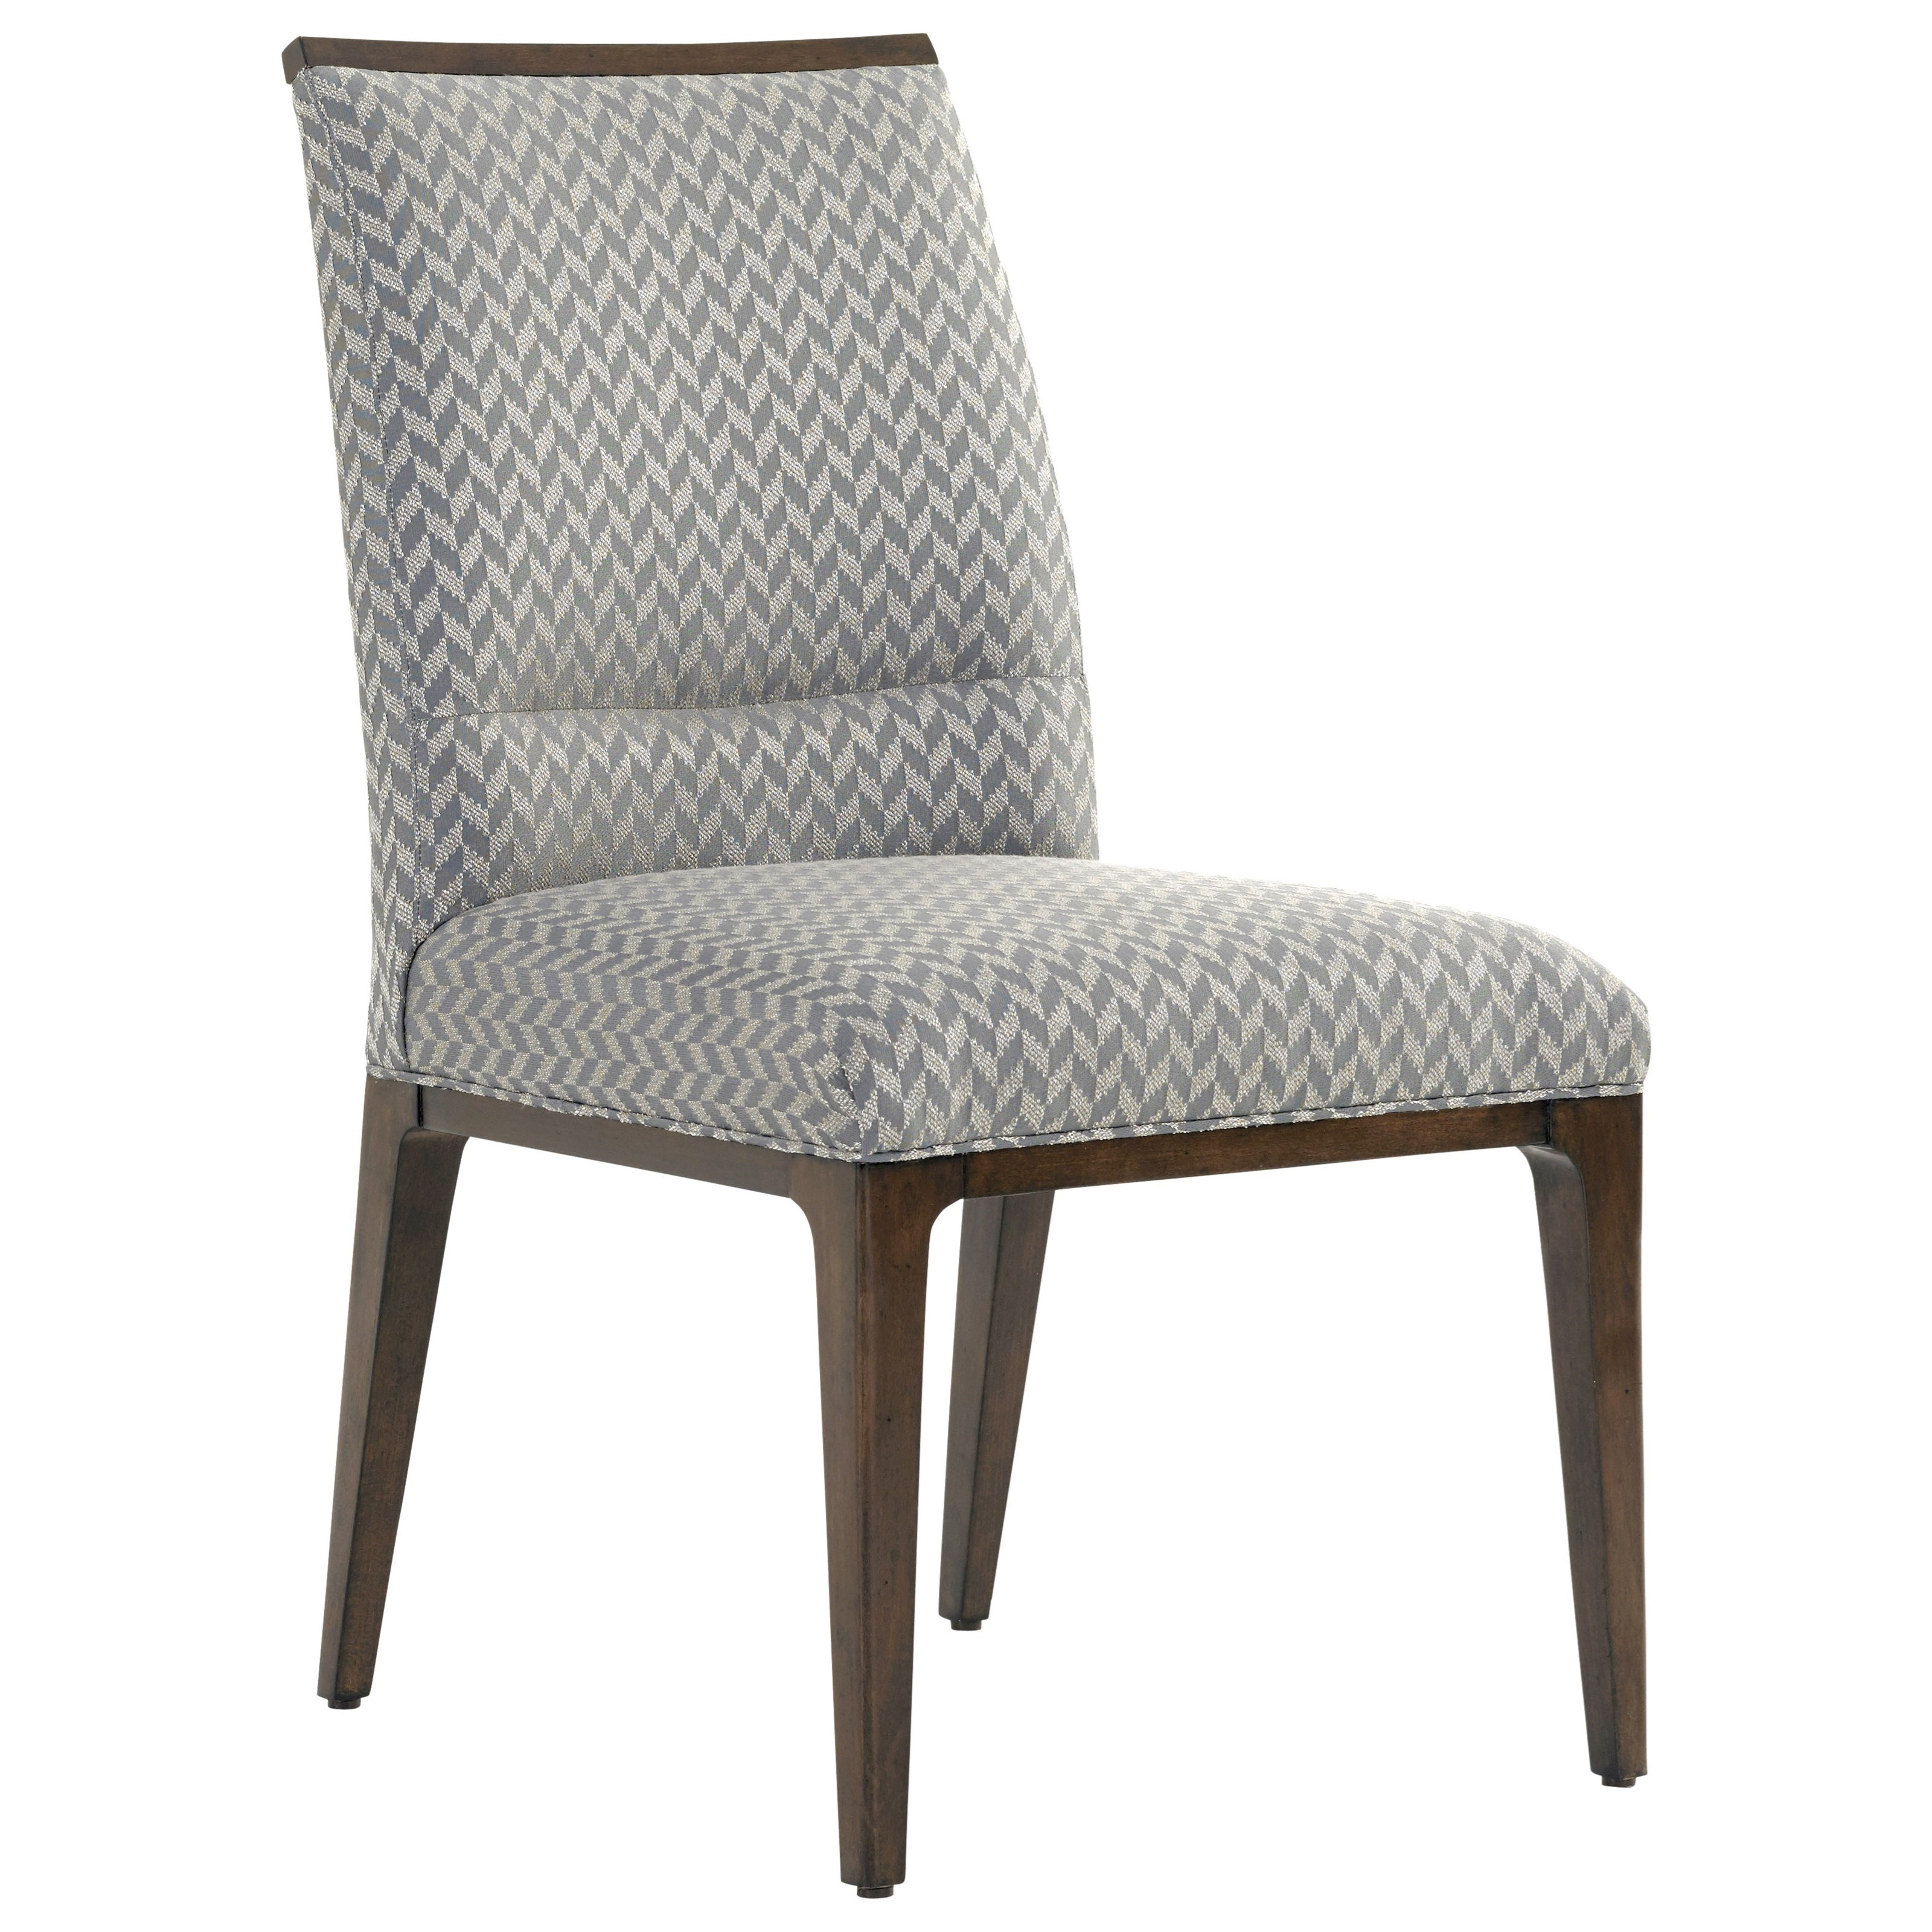 MacArthur Park Collina Customizable Upholstered Side Chair by Lexington at Johnny Janosik